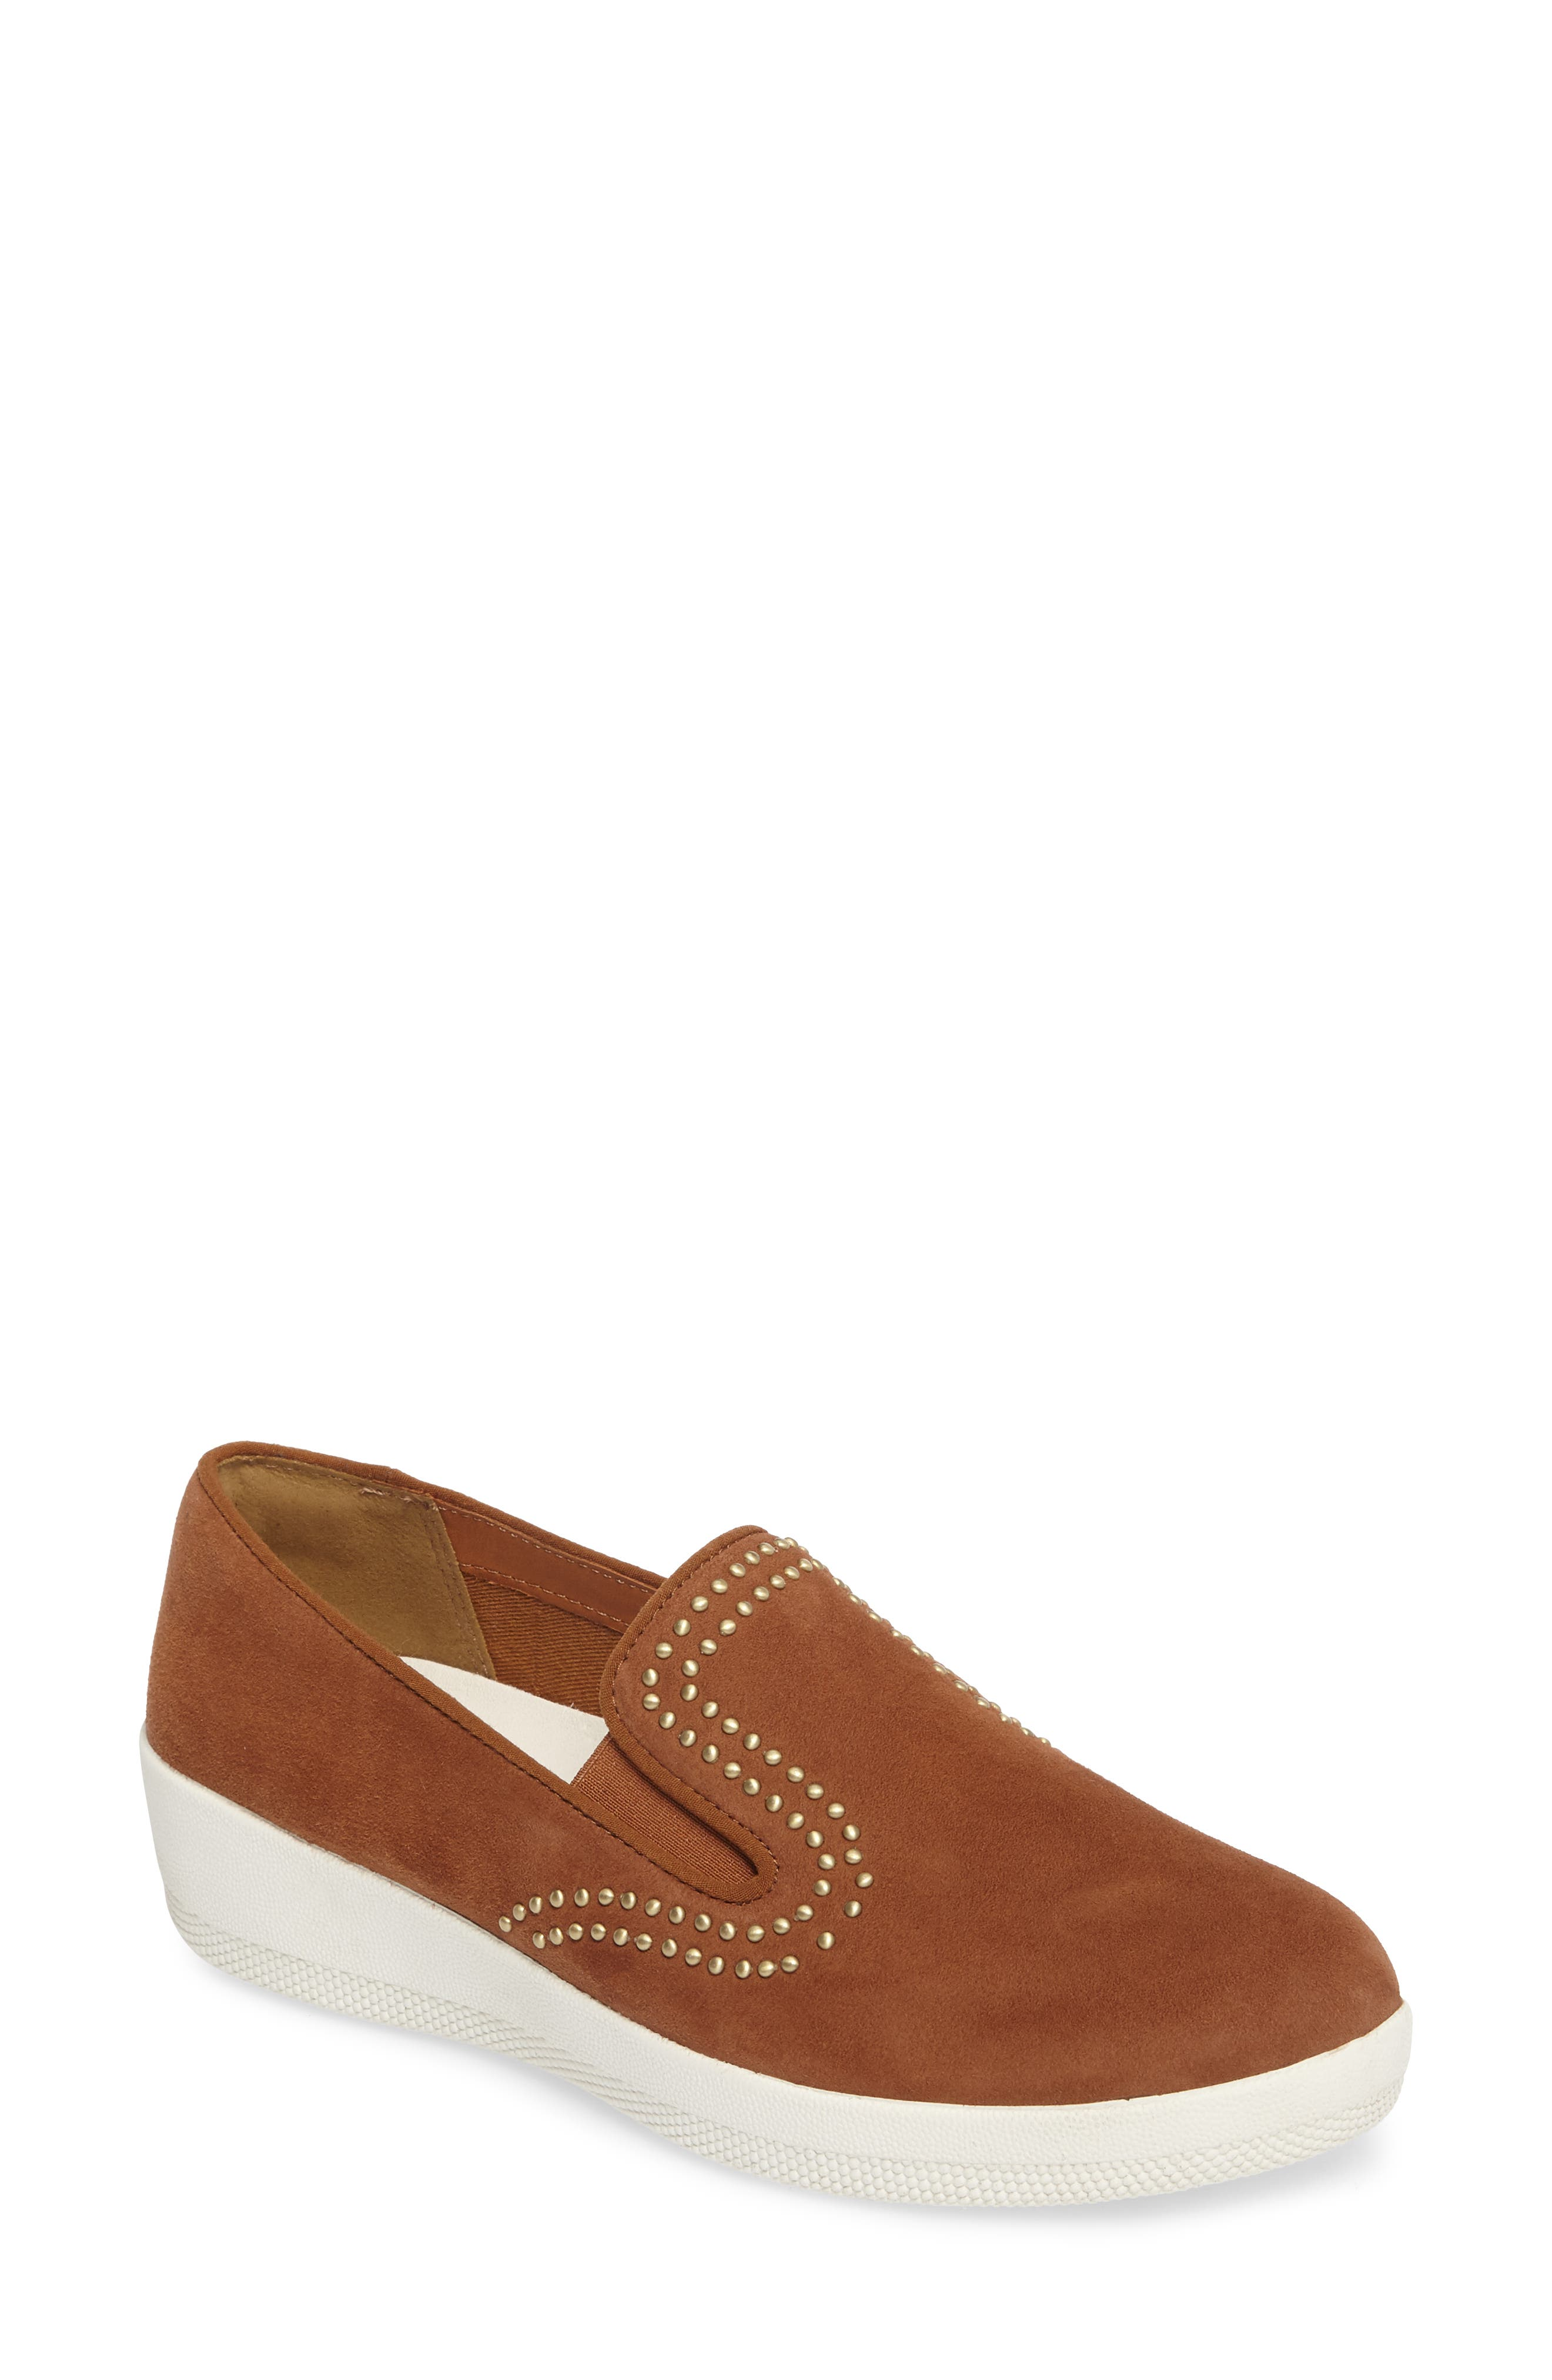 Main Image - FitFlop Superskate Studded Wedge Loafer